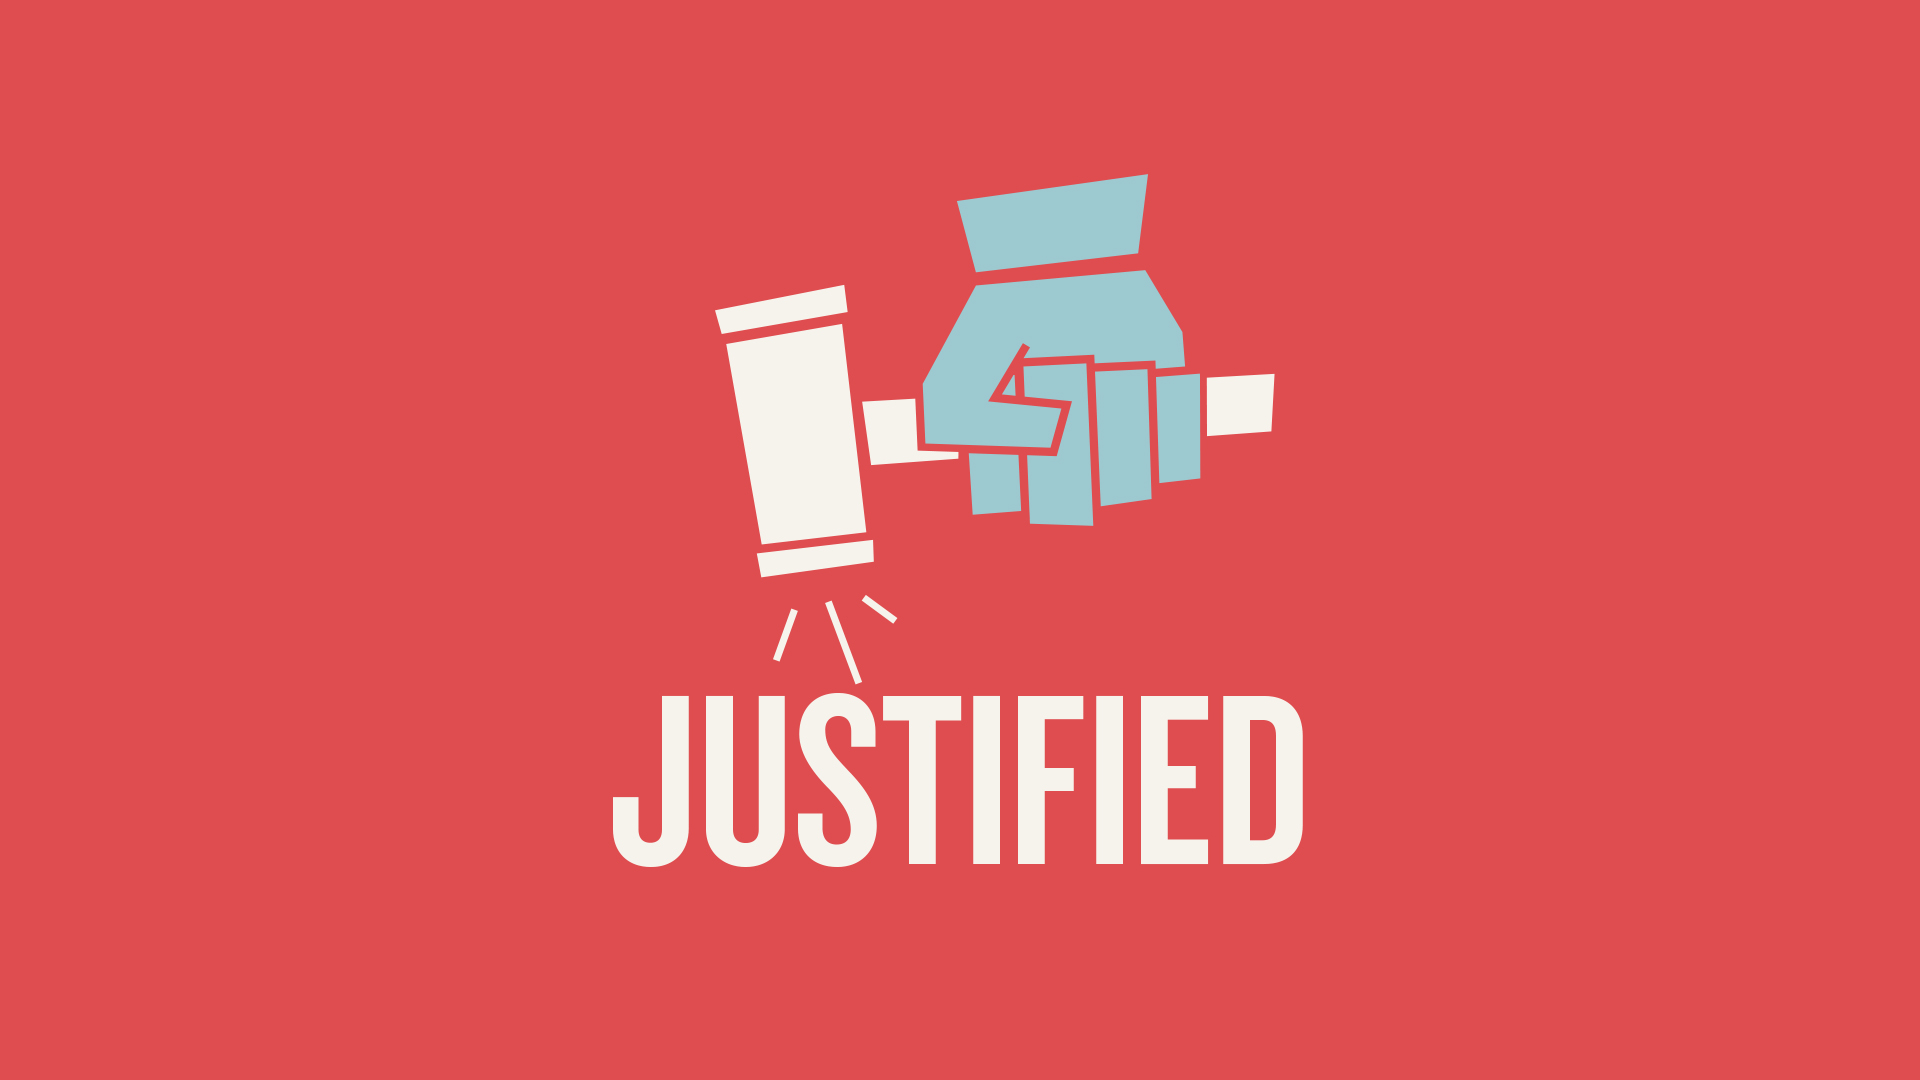 The term itself is legal in nature and thus carries with it the connotation of a sentence being rendered. In the case of the believer, God the Father renders us justified due to Christ's atoning work on the cross. A hand rapping a gavel was utilized to illustrate the act of justification.